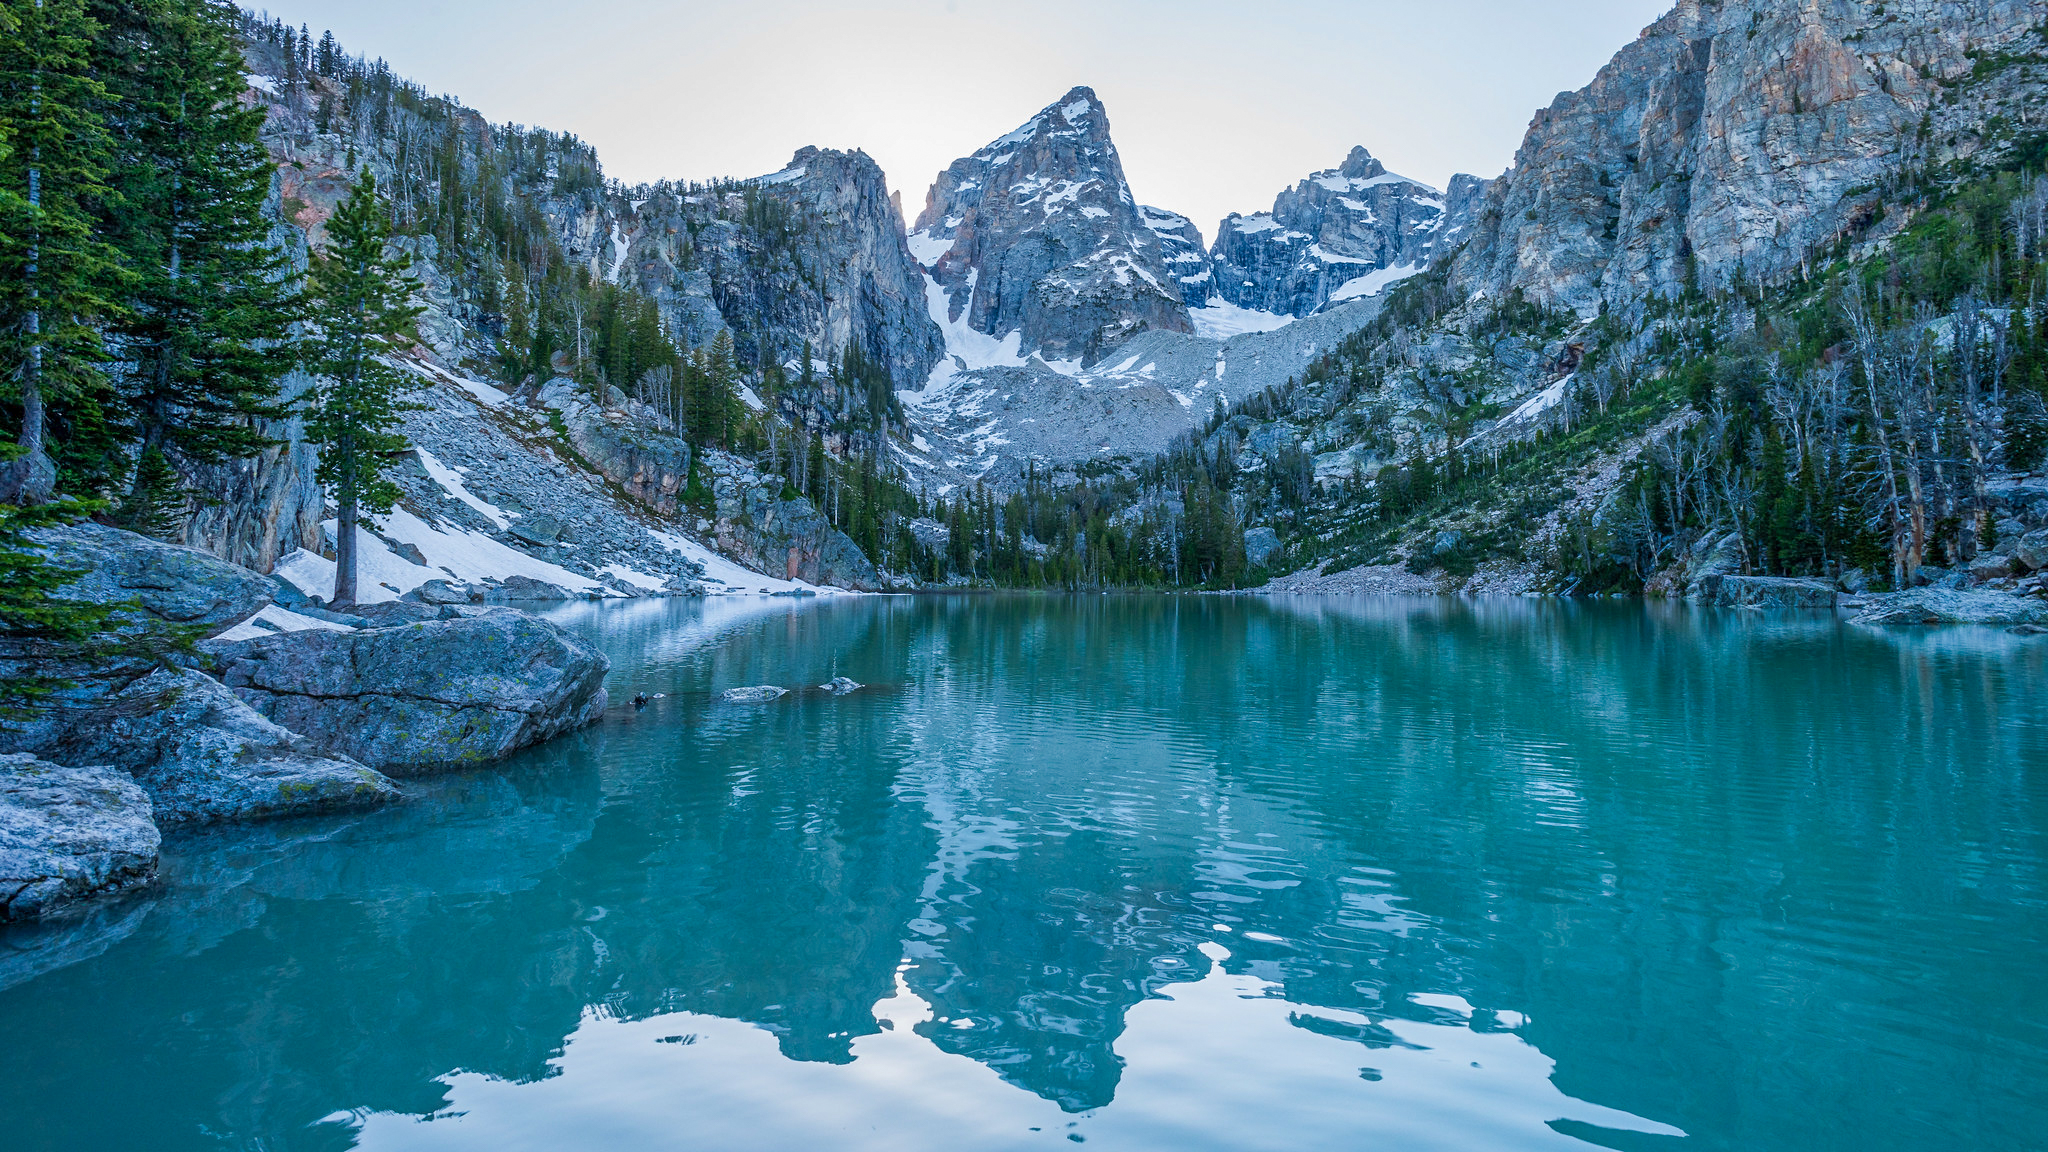 A lake with clear blue glacier water, green trees around the lake and the tall snowy mountain peaks surrounding the lake like an amphitheater.